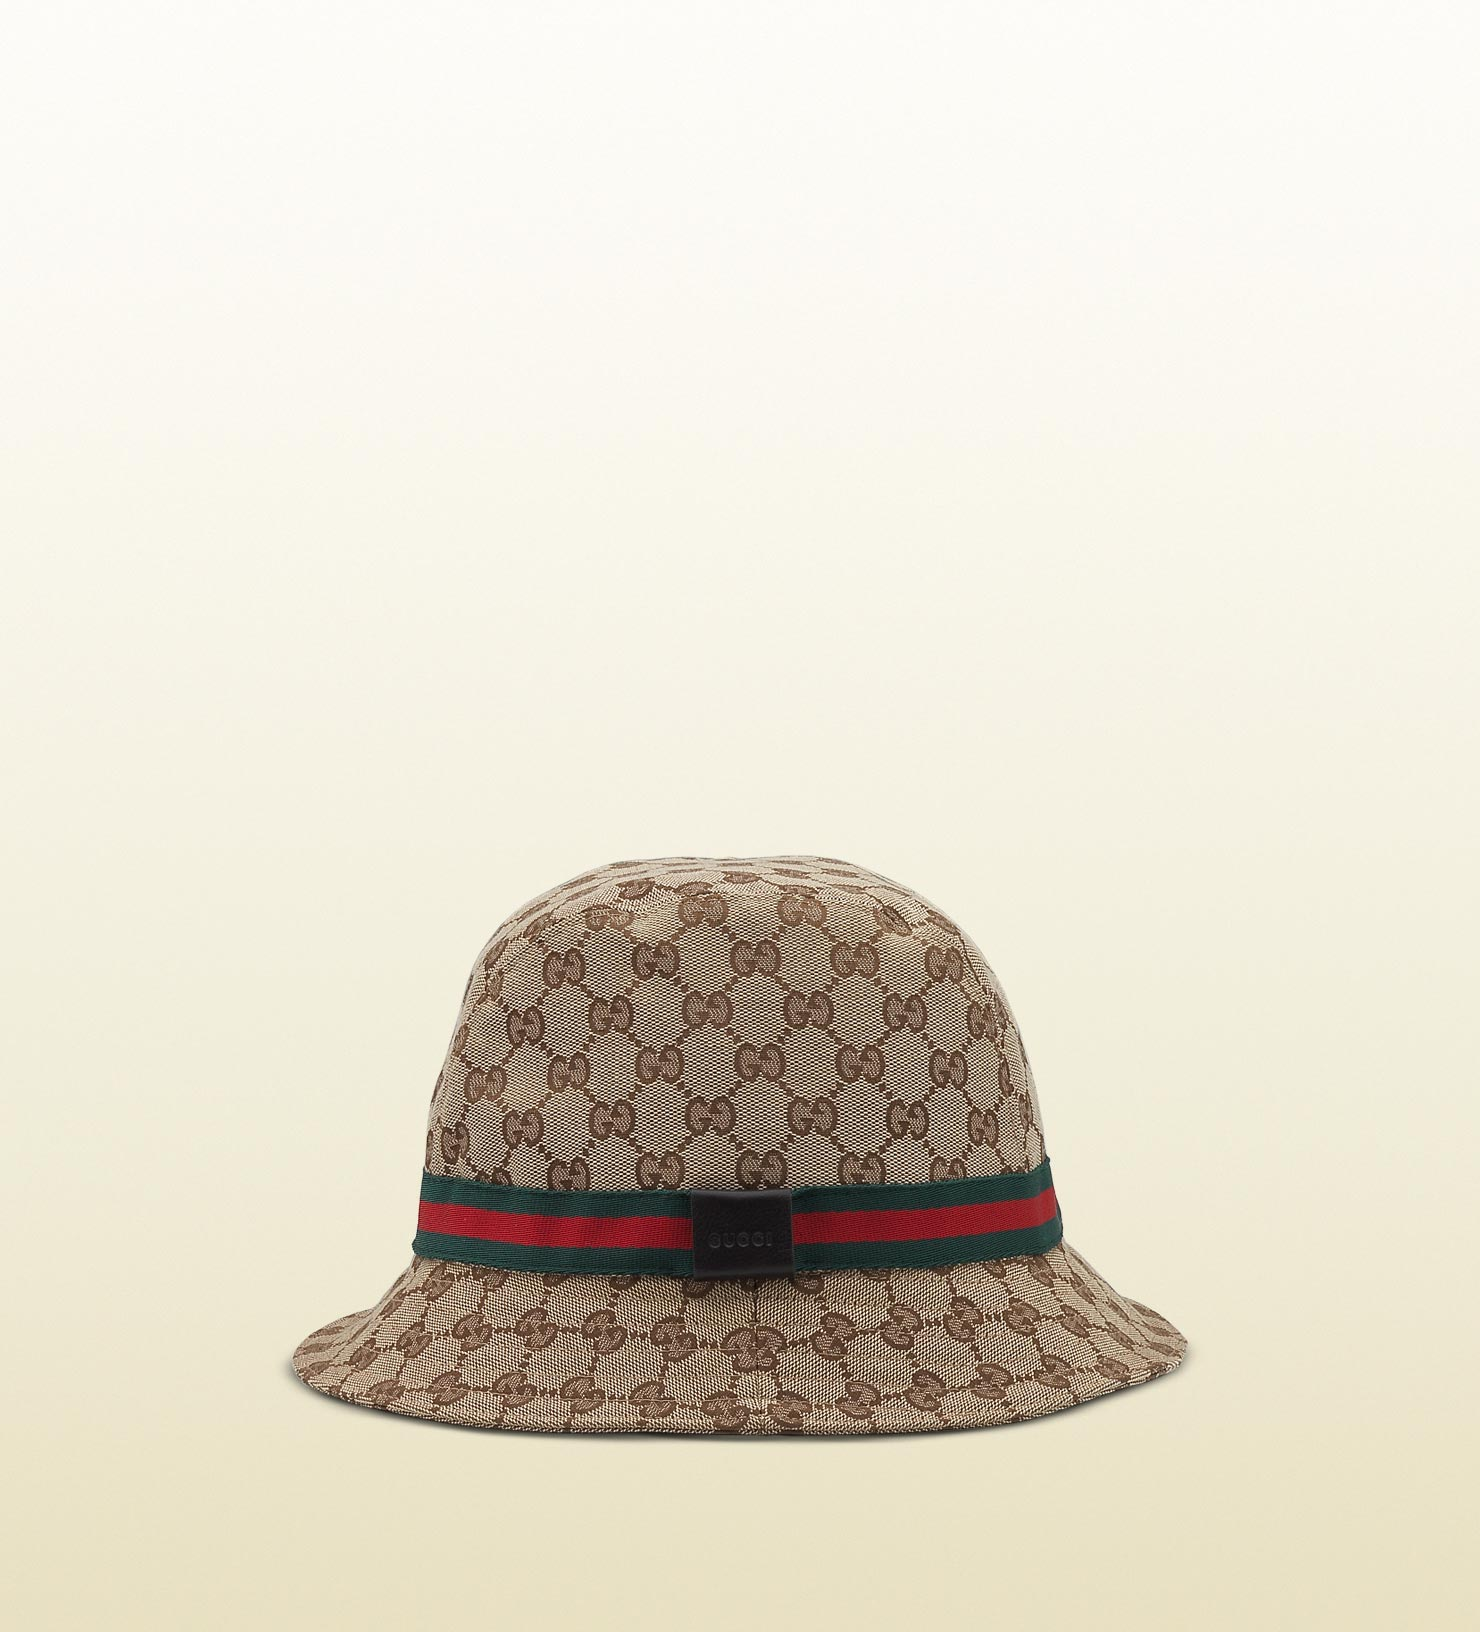 de693dad4afe6 Lyst - Gucci Original Gg Canvas Fedora With Web in Natural for Men